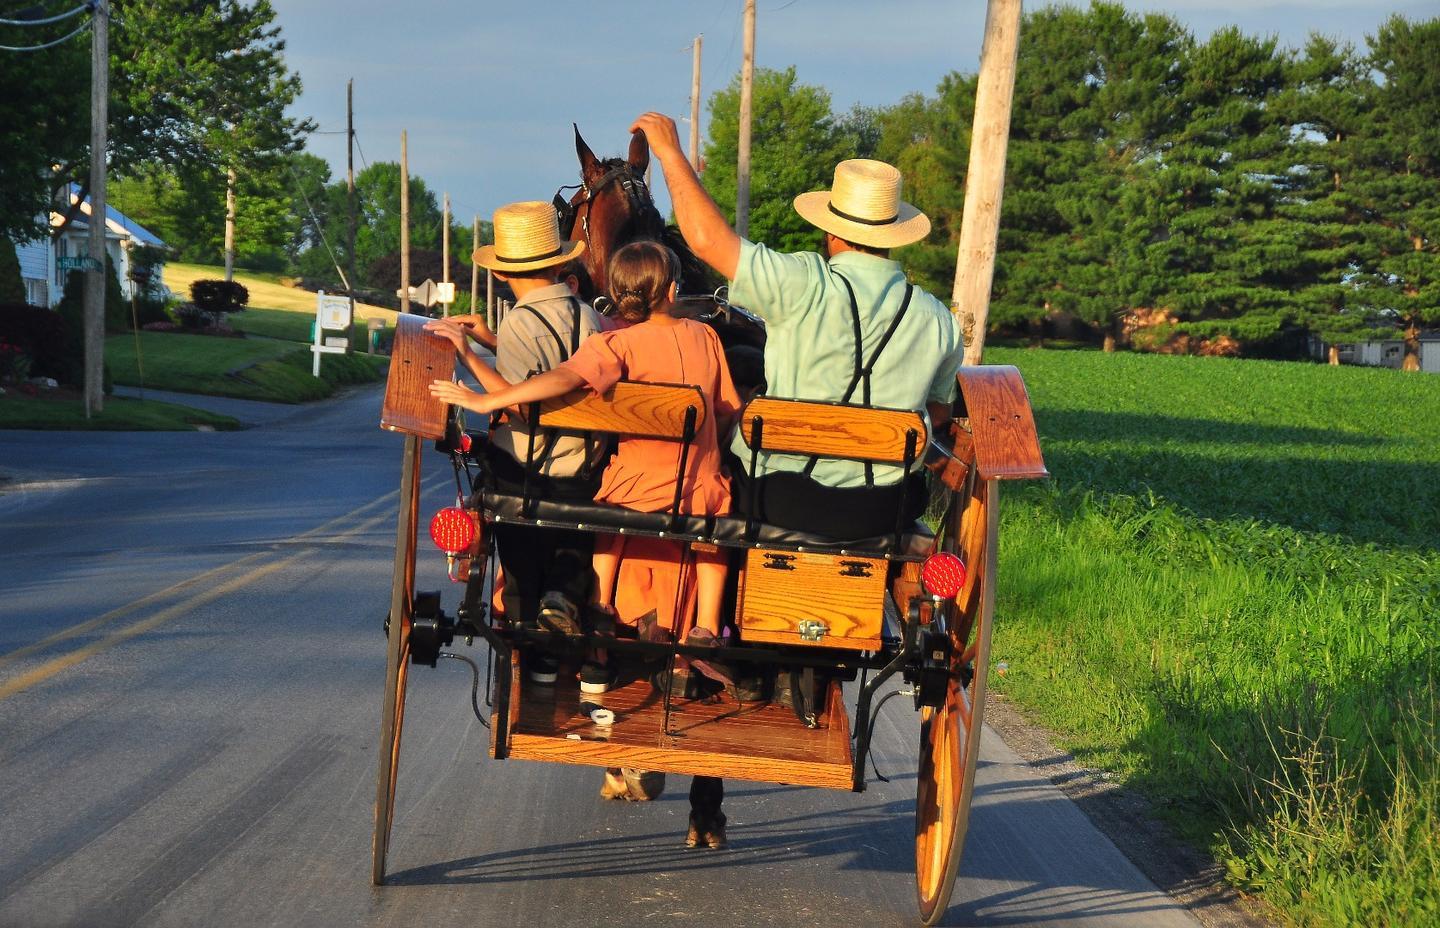 Scientists have discovered a genetic mutation in an Amish community that lets them live longer and protects them from diabetes and other age-related illnesses